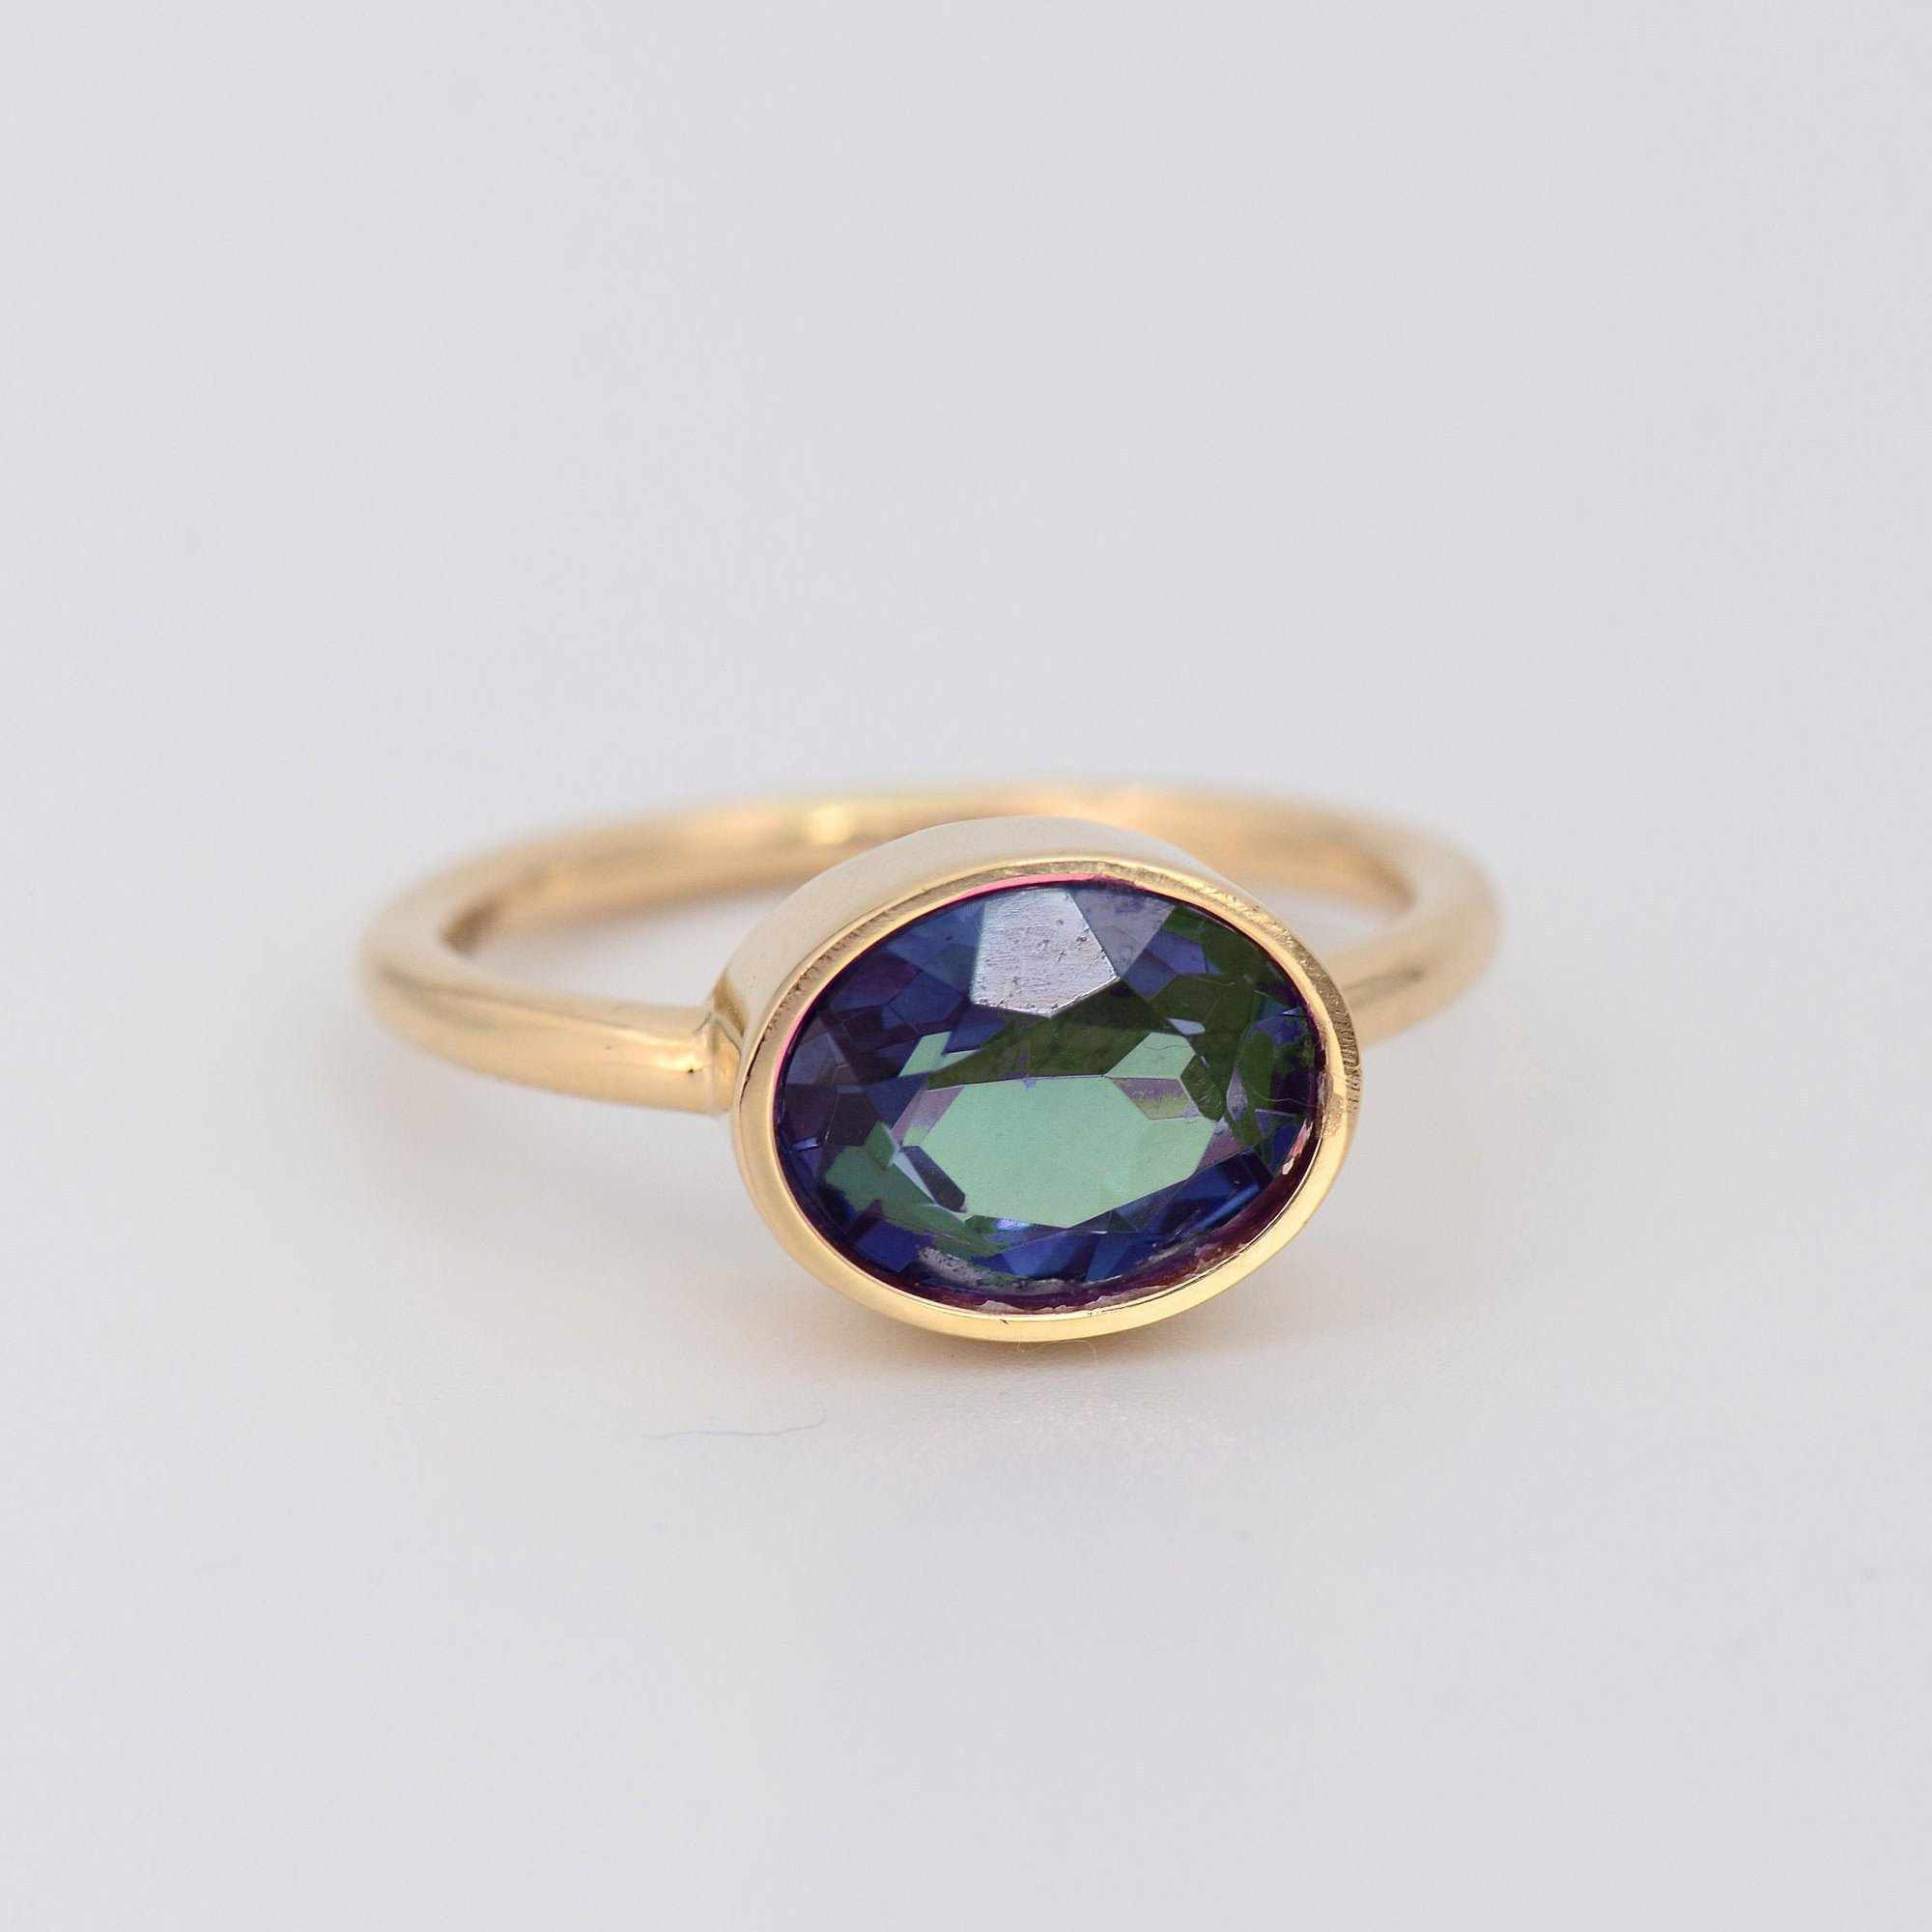 Alexandrite ring, Alexandrite Jewelry, Solid Gold ring, June Birthstone ring, Mother's gift for wife, Color Changing Gemstone, 14k Gold Ring